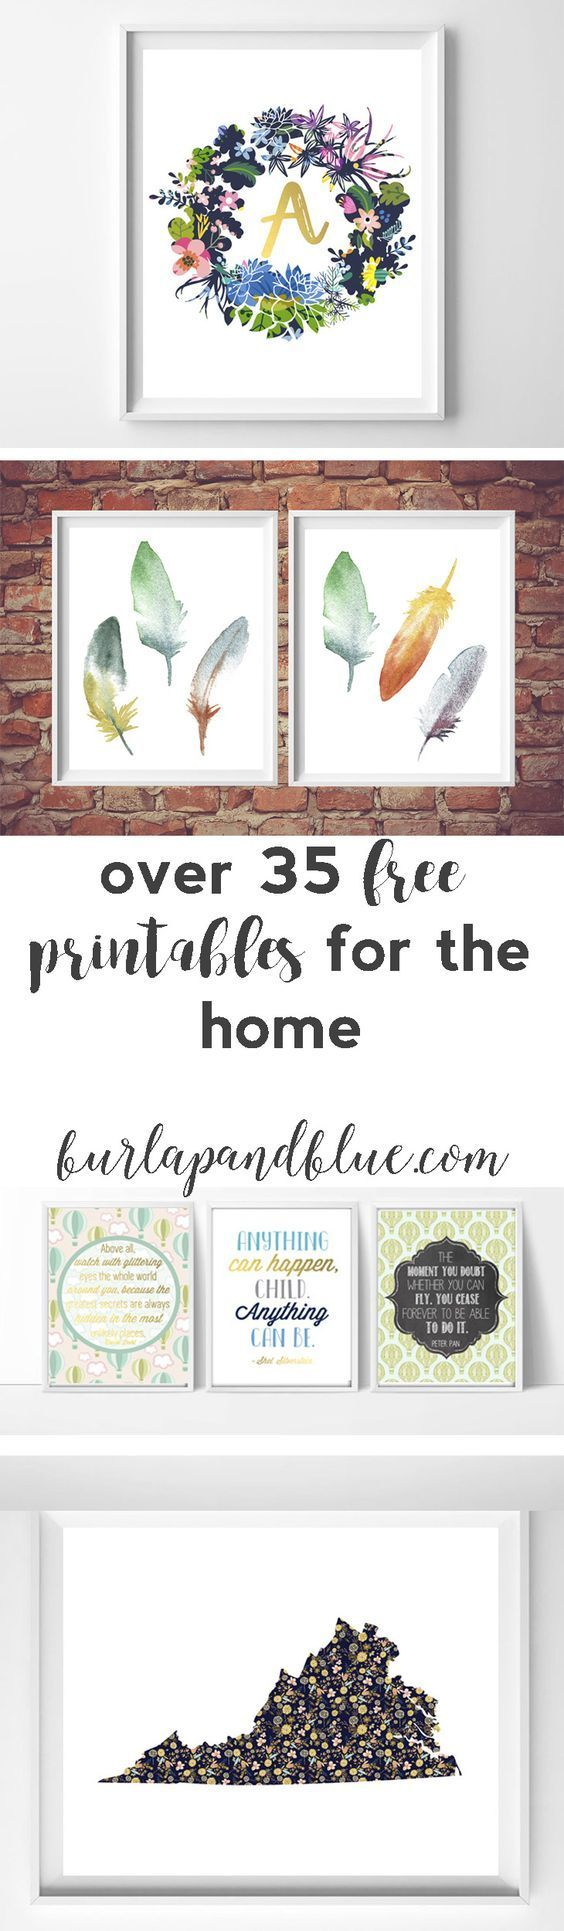 best 25 stuff for free ideas on pinterest family matters